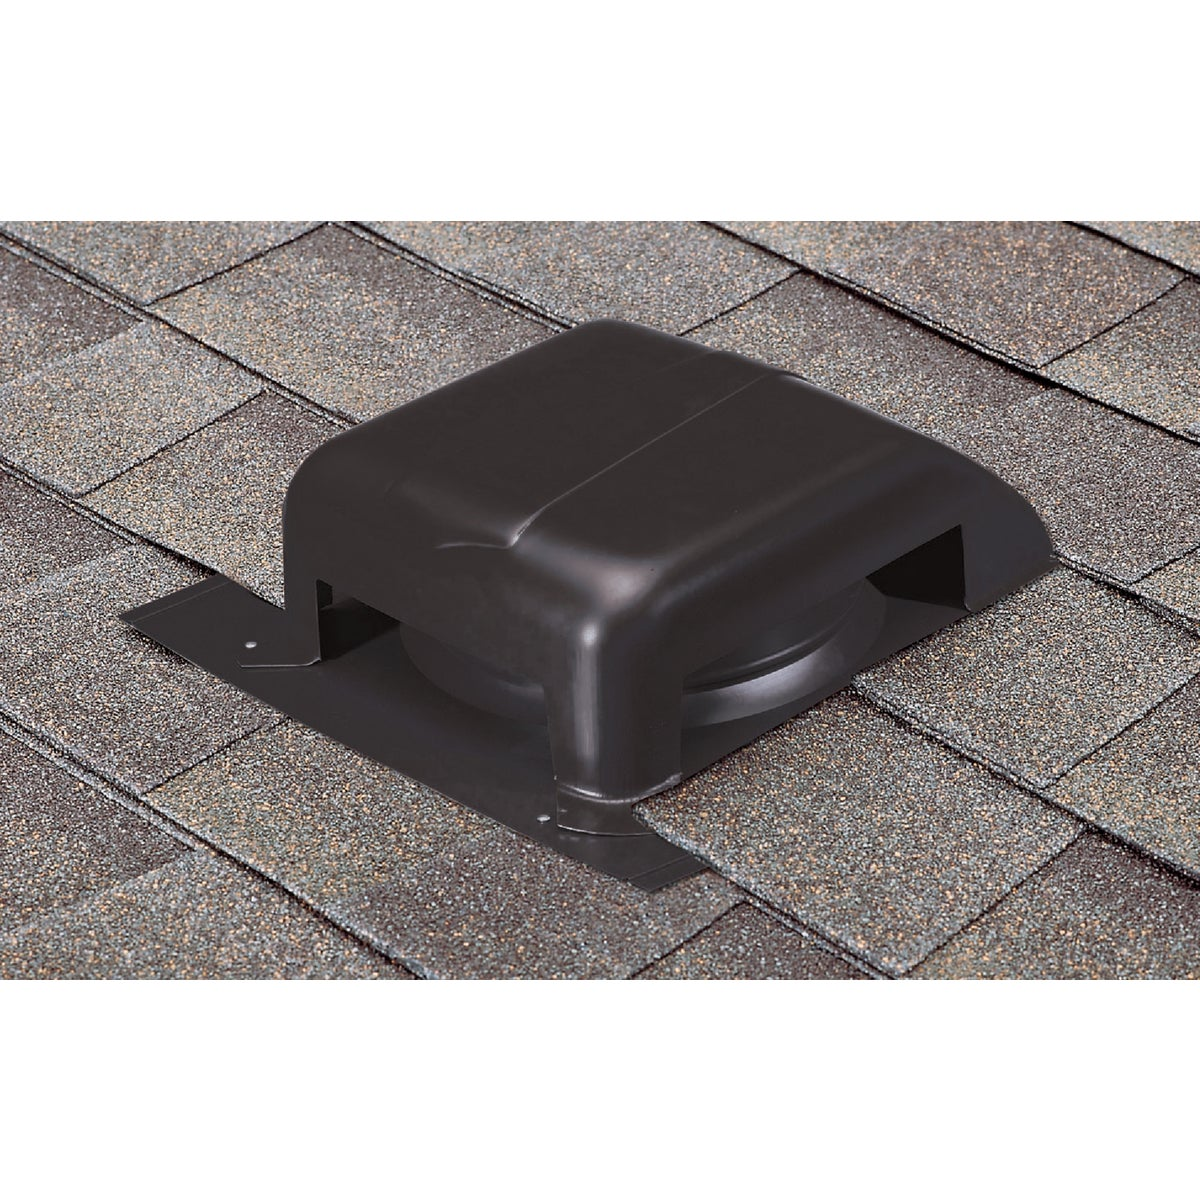 Airhawk 40 In. Galvanized Slant Back Roof Vent, RVG40010